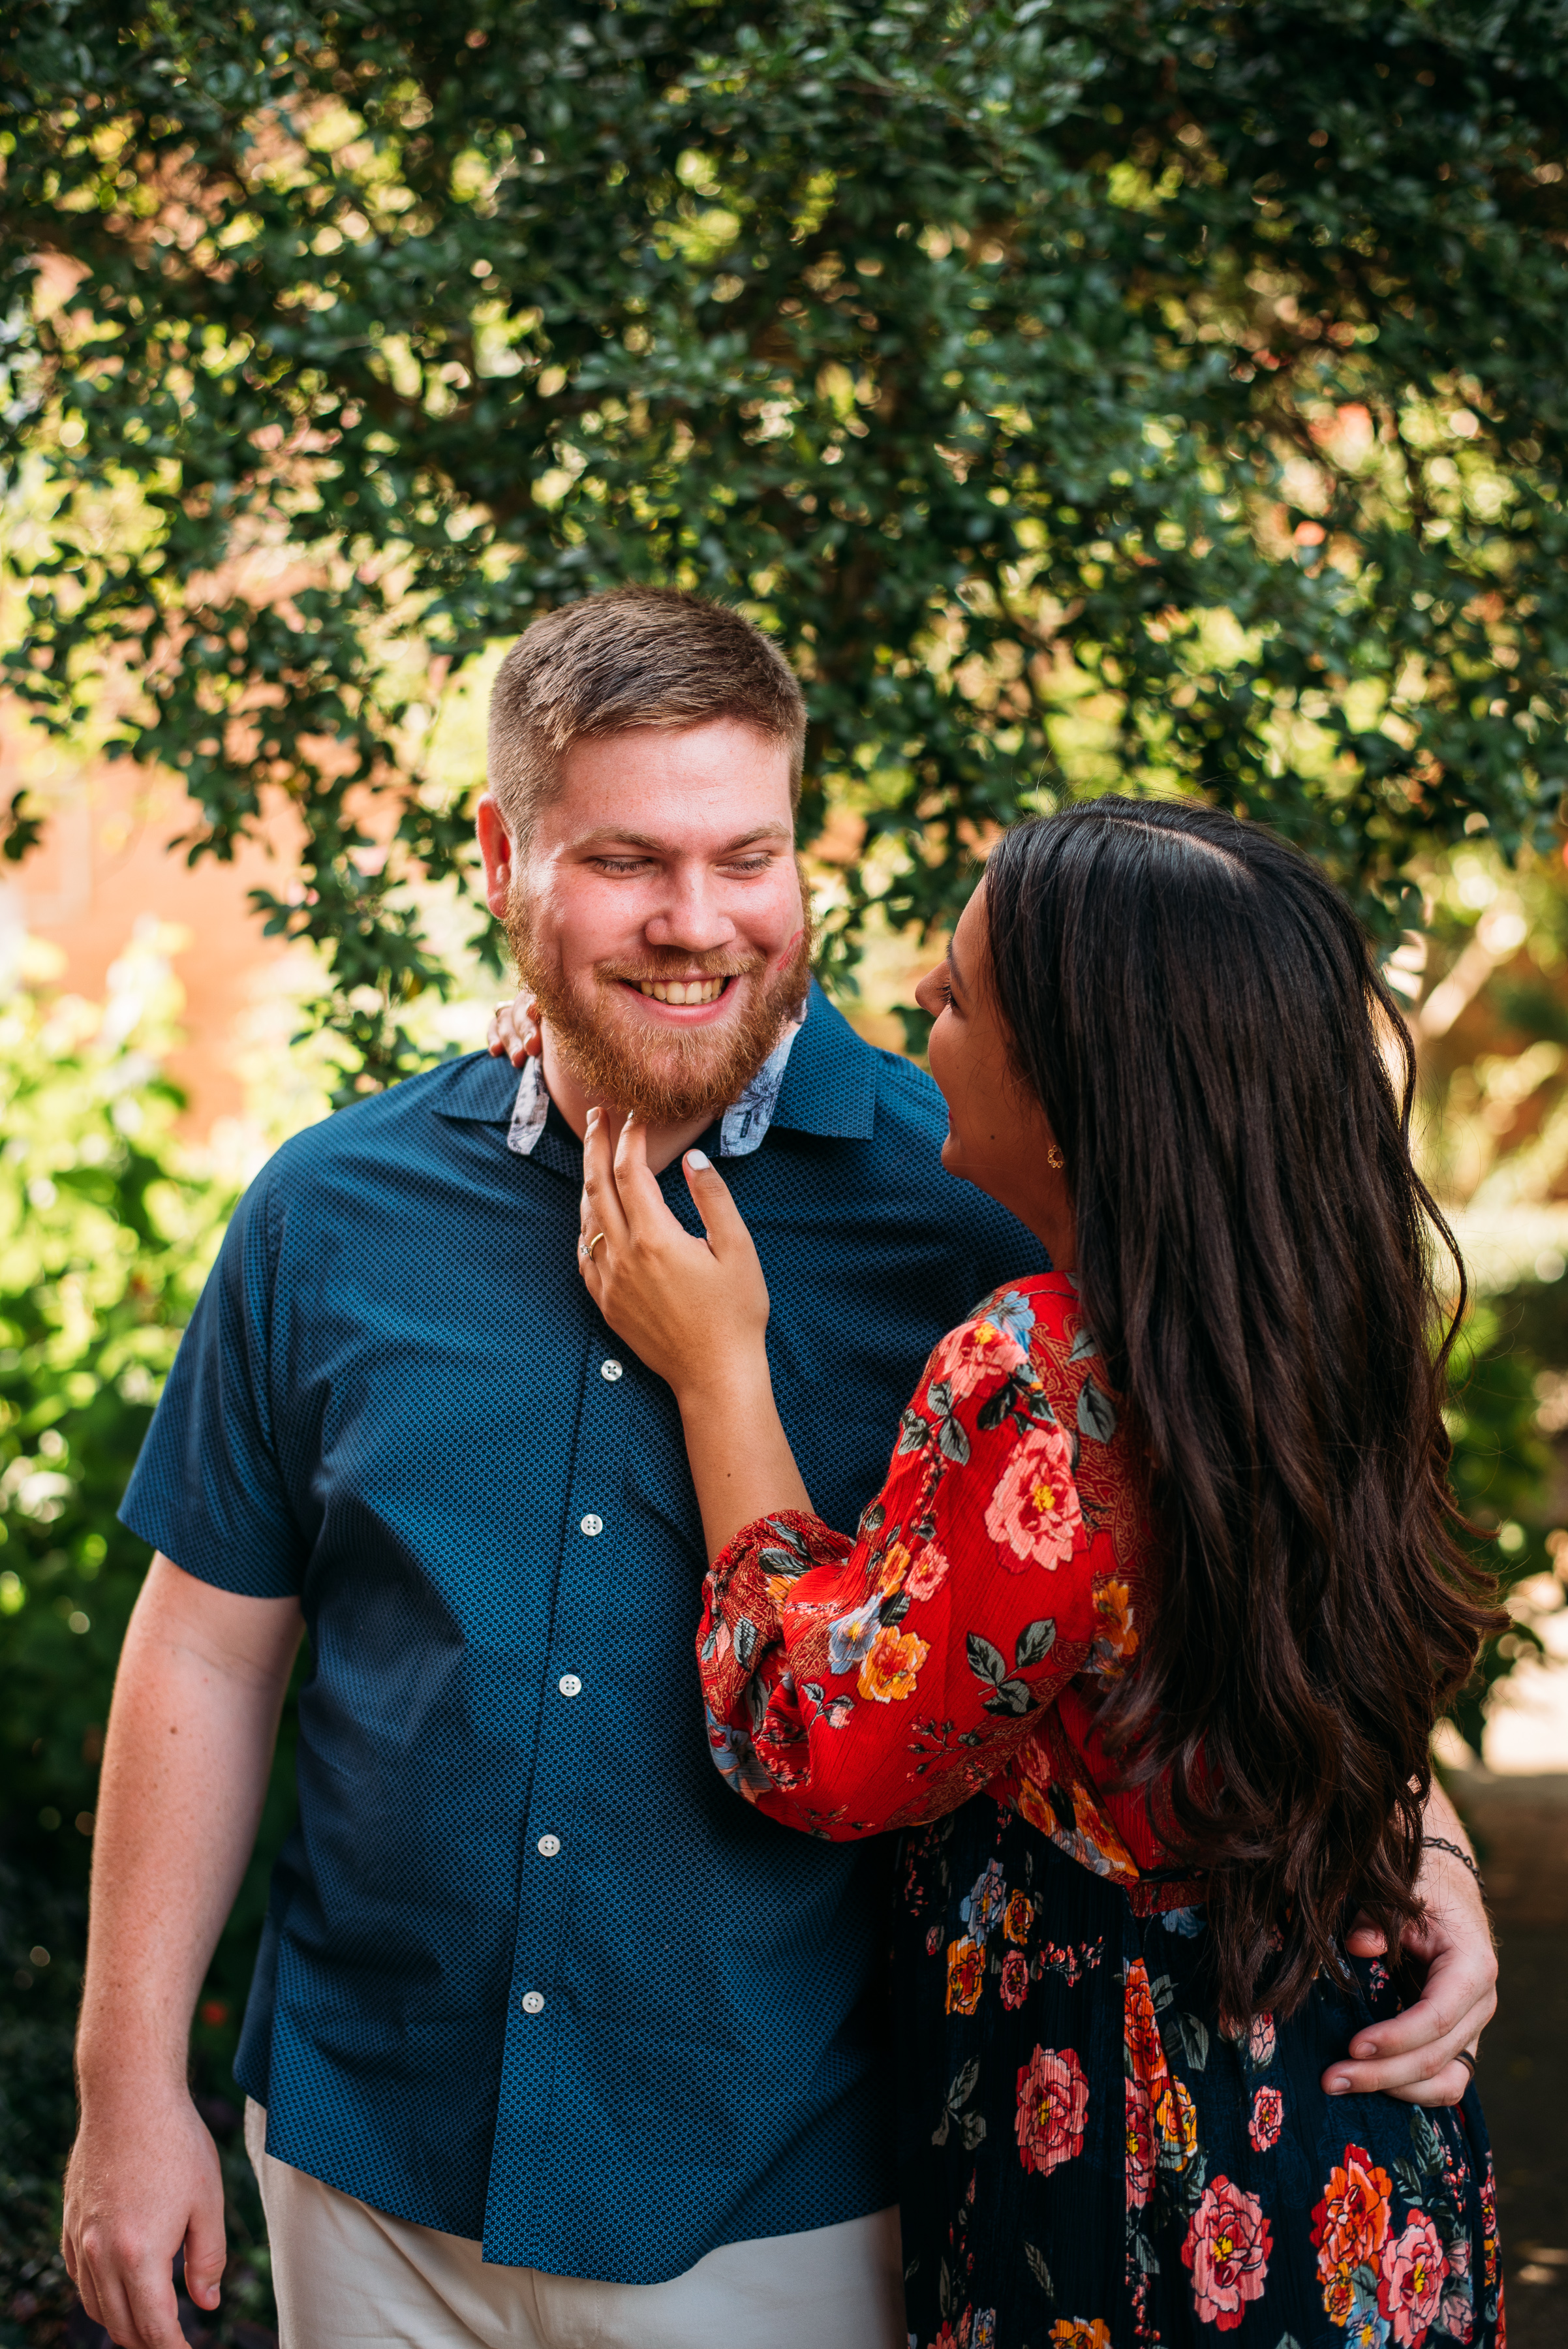 Downtown-Bryan-Engagement-George-Bush-Library-Texas-A&M-University-College-Station-Wedding-Photographer-San-Angel-Photo-Mark-Abigail-Jake-05.jpg